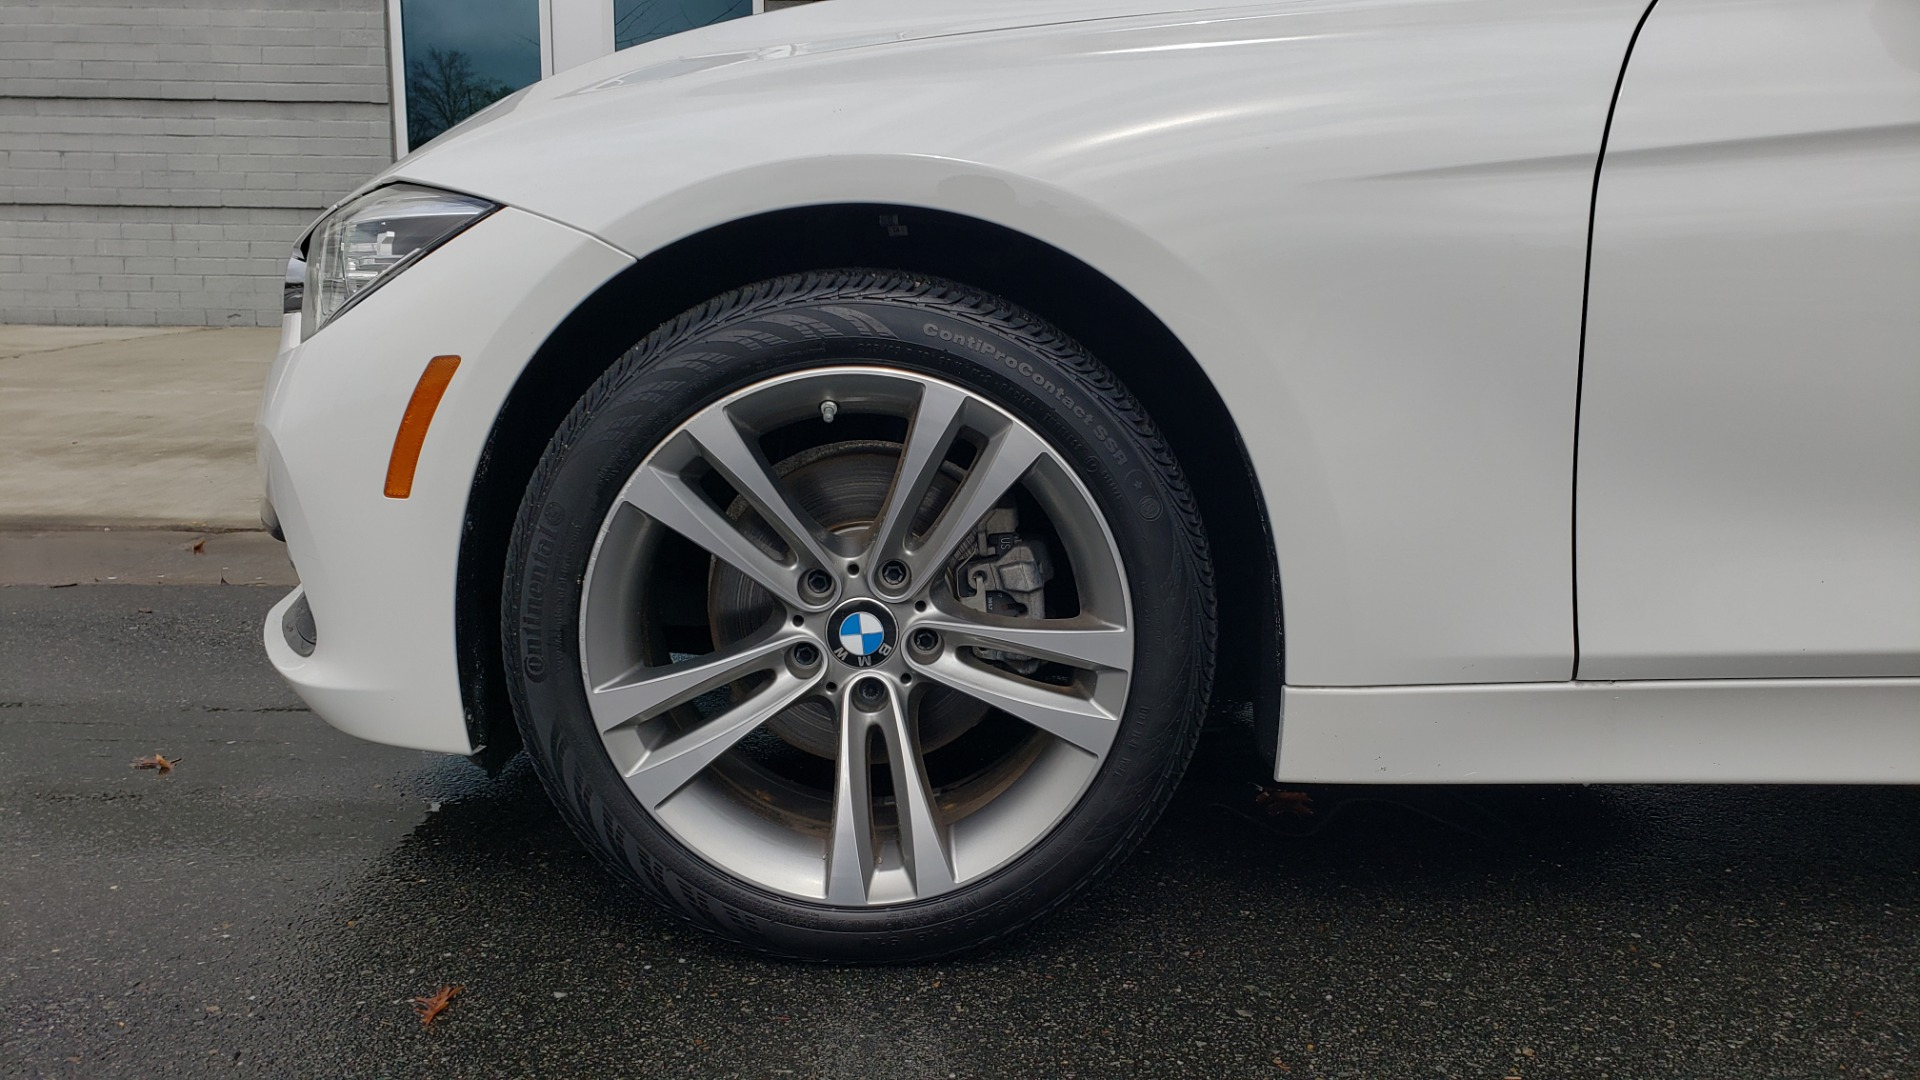 Used 2018 BMW 3 SERIES 330I XDRIVE / CONV PKG / SUNROOF / HTD STS / REARVIEW for sale $24,795 at Formula Imports in Charlotte NC 28227 80